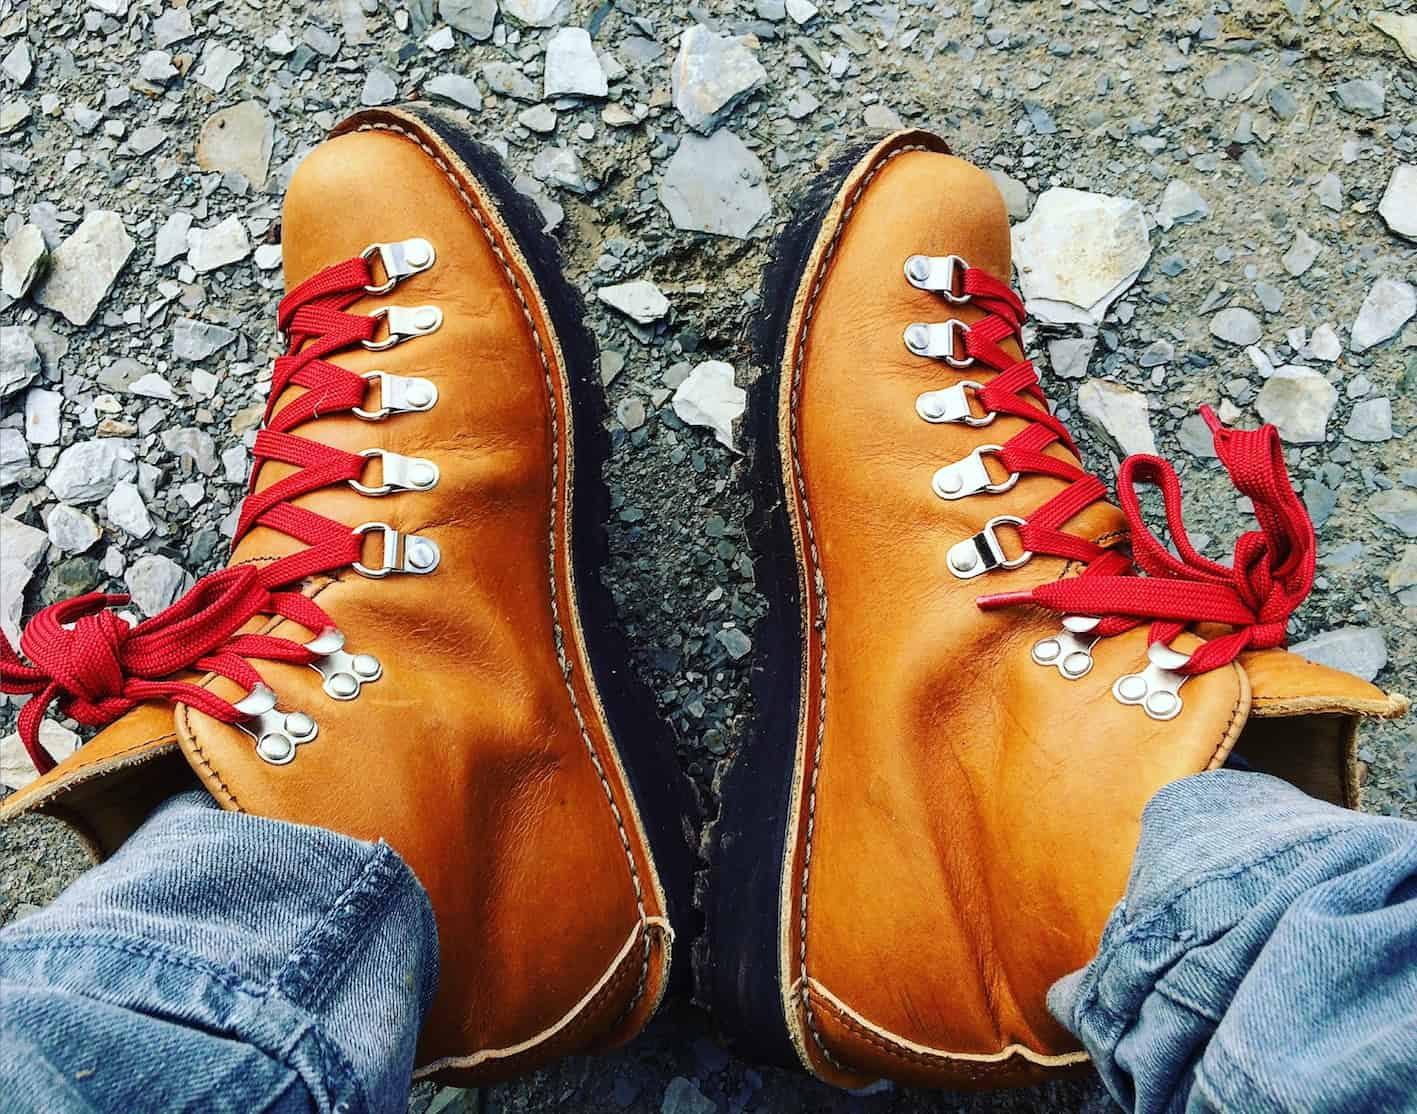 rocking red laces on Danner's traditional classic women's hiking boot